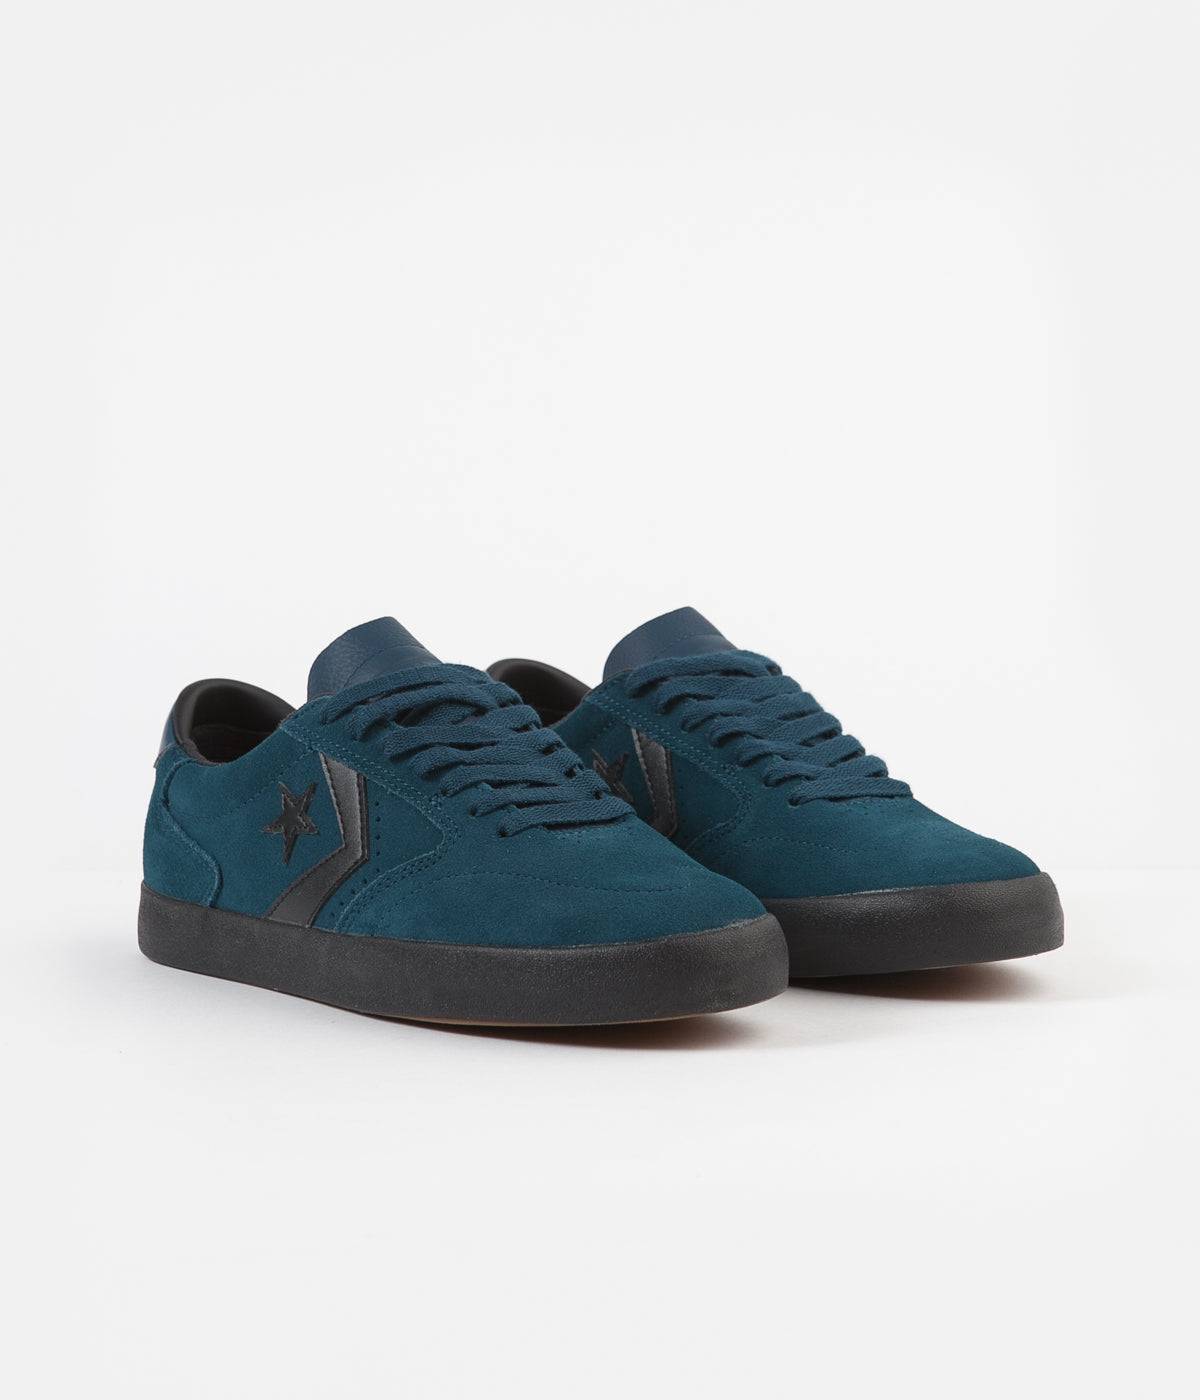 Converse Checkpoint Pro Ox Suede Shoes - Midnight Turquoise / Black / Black